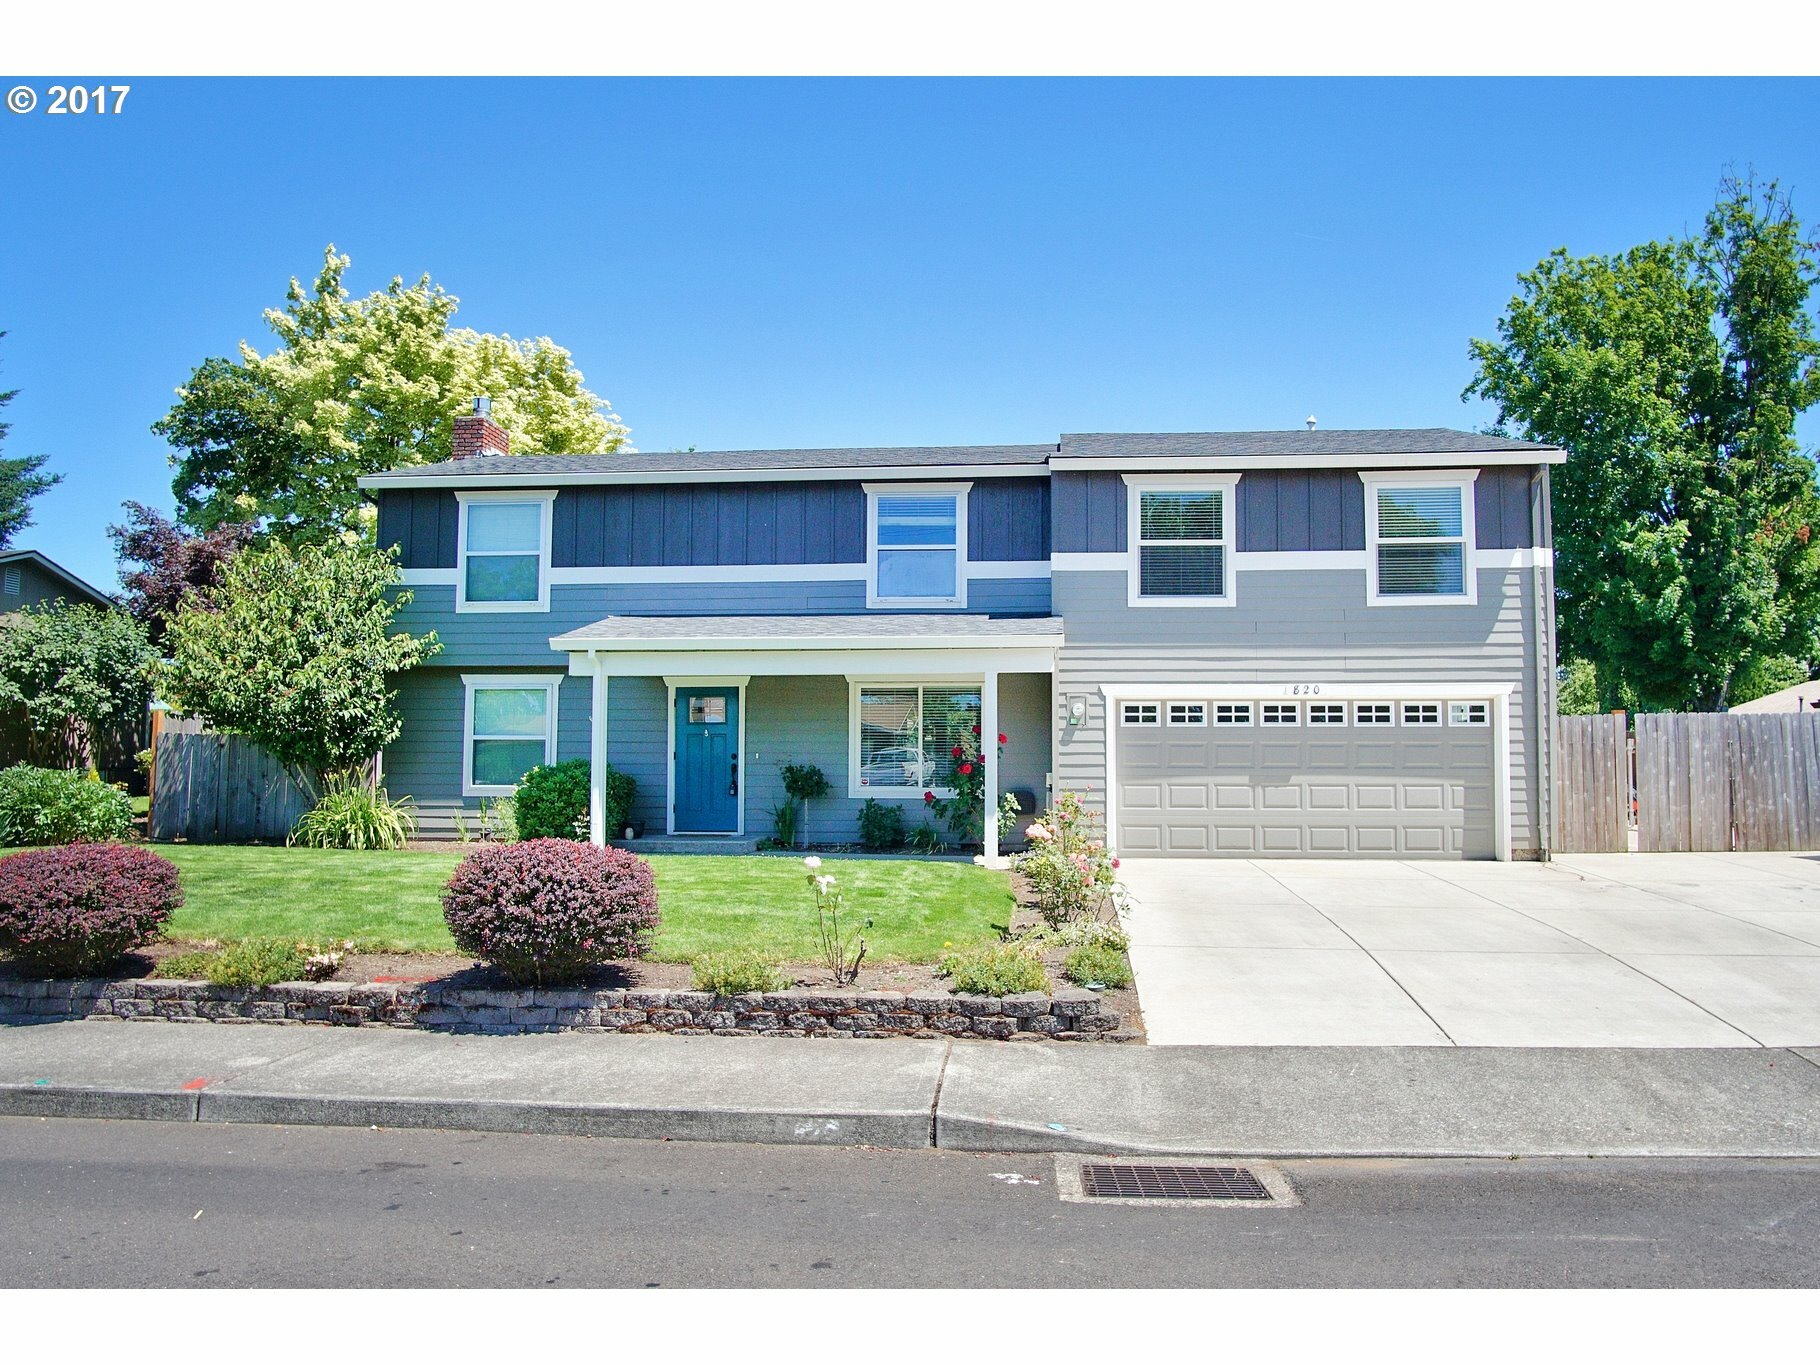 820 N Birch St, Canby, OR - USA (photo 1)